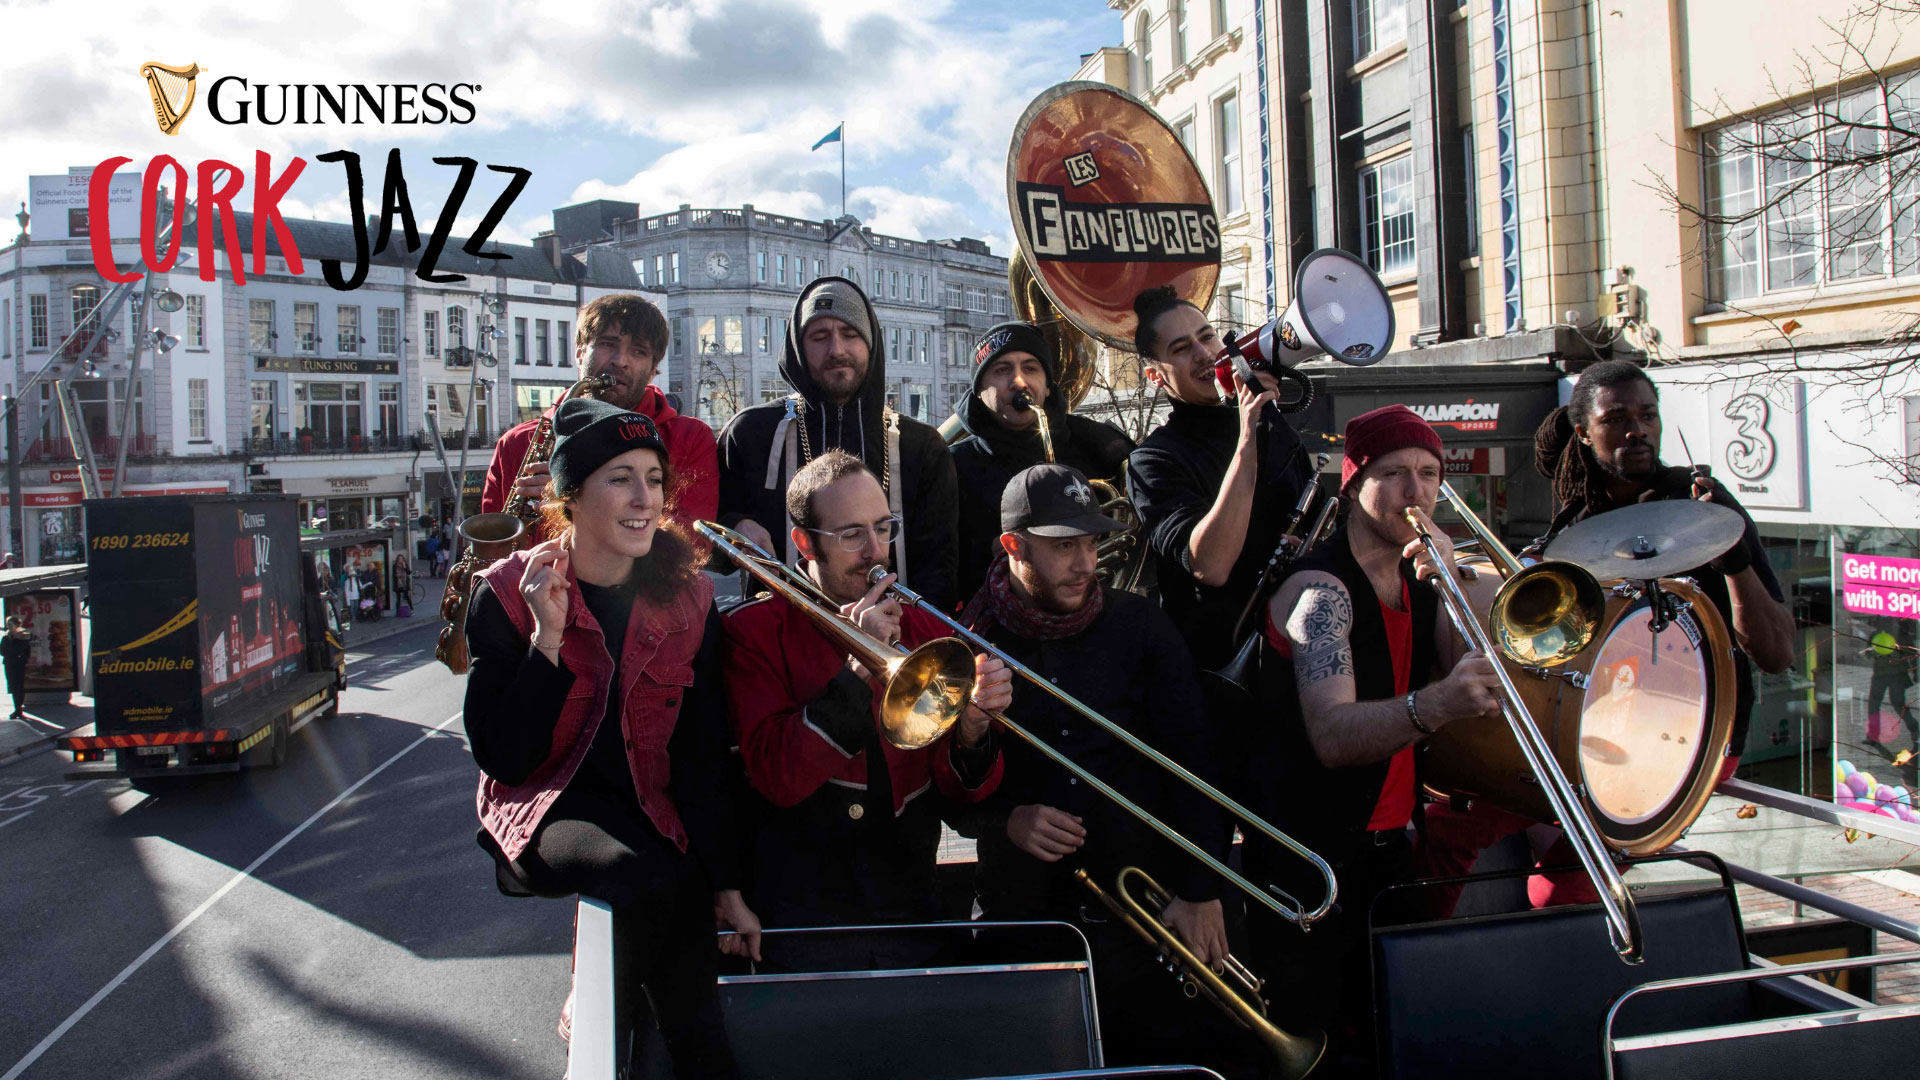 Giants of Jazz among headliners for Guinness Cork Jazz Festival 2019